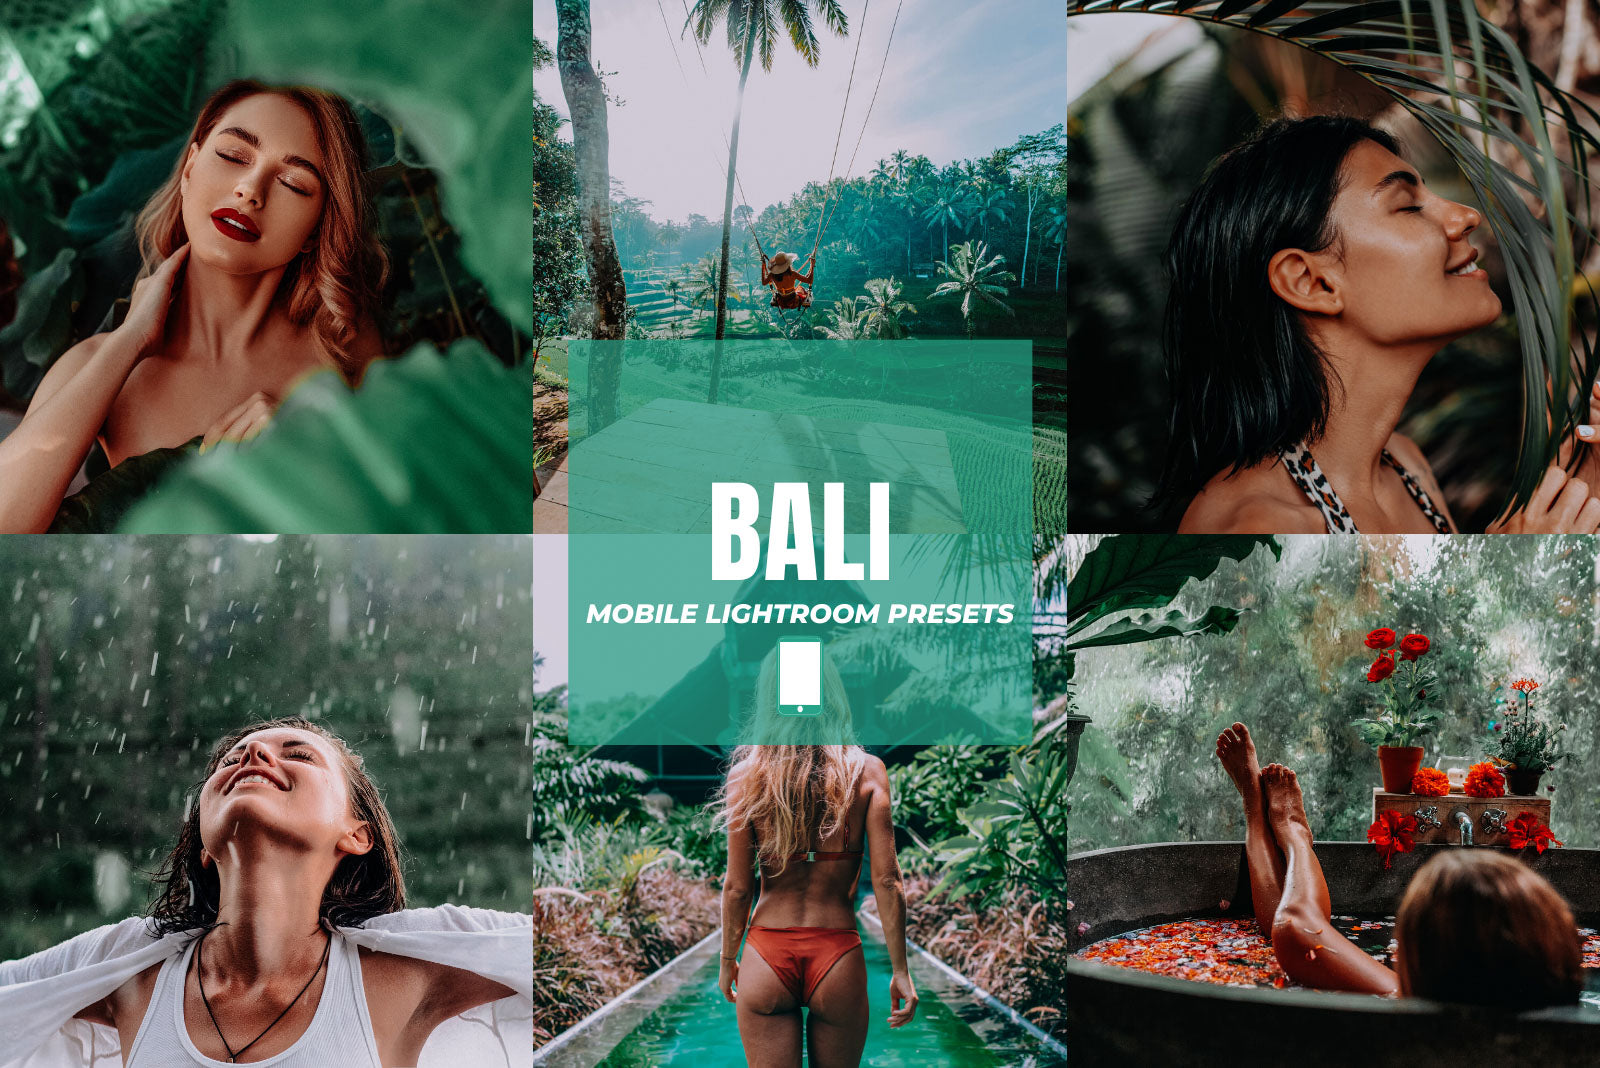 BALI MOBILE LIGHTROOM PRESETS by The Viral Presets